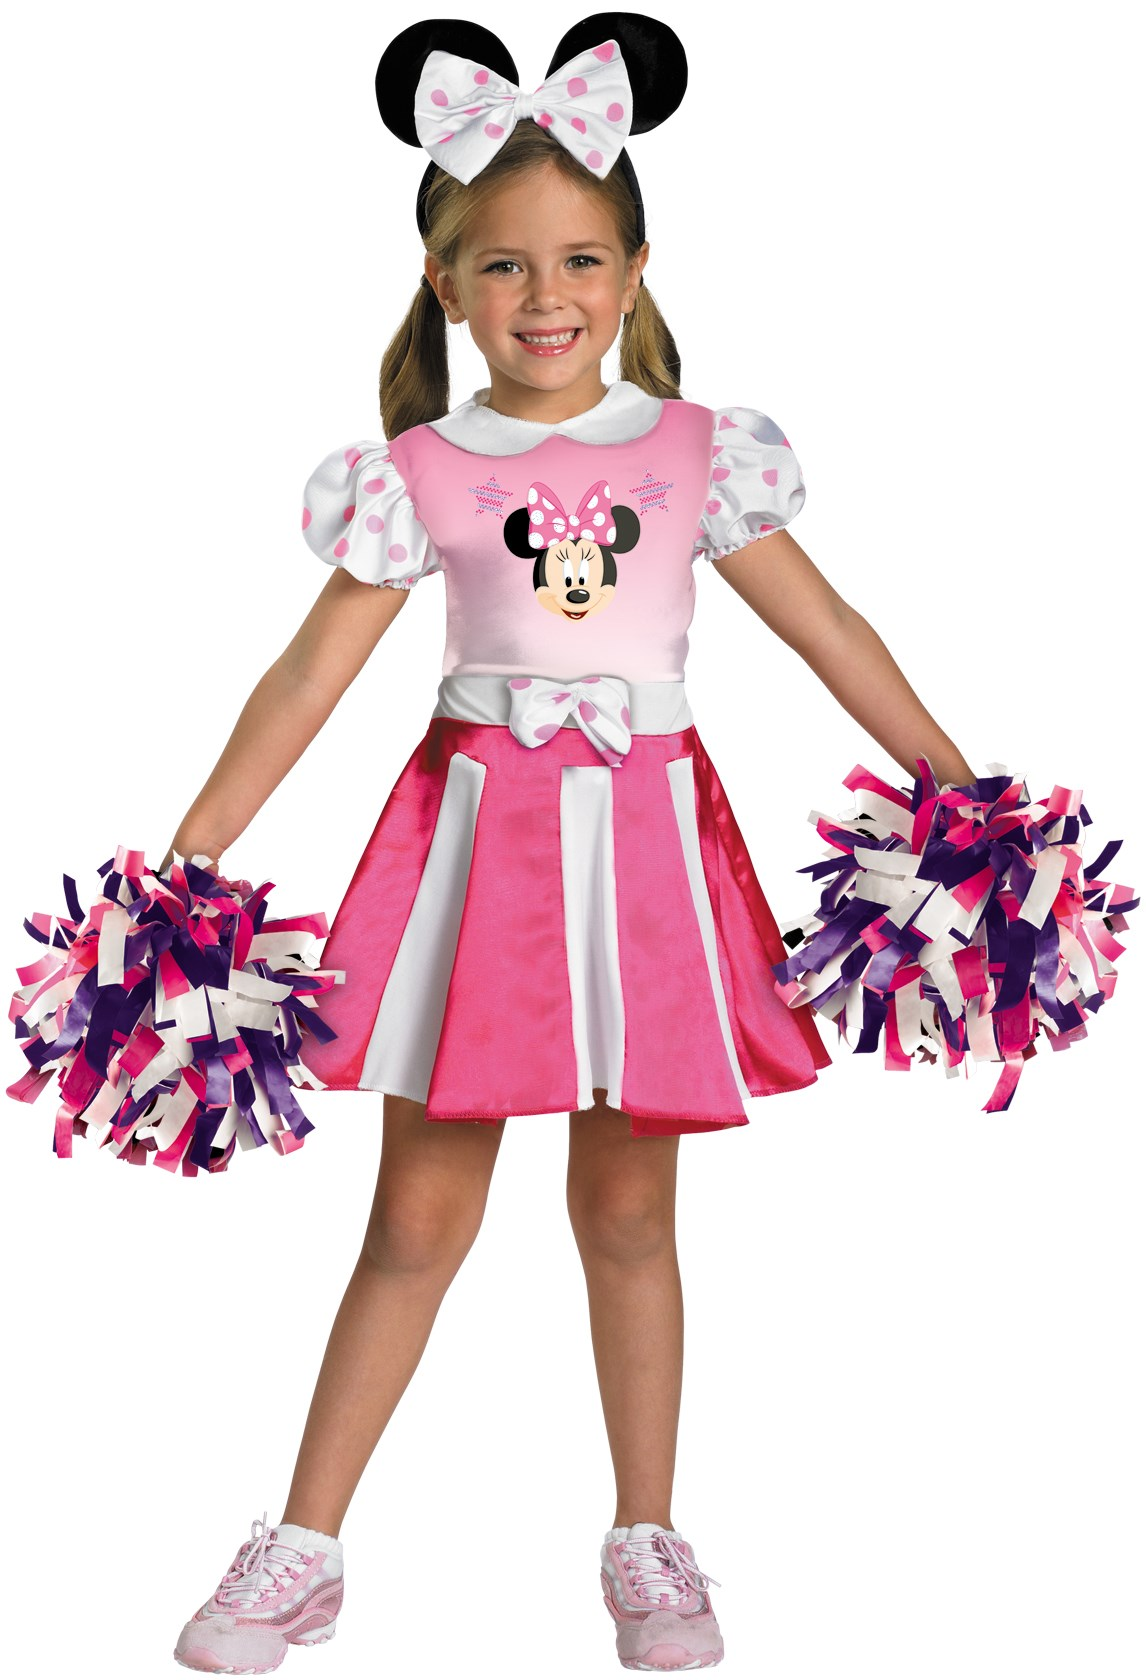 Mickey Mouse Clubhouse - Minnie Mouse Cheerleader Toddler / Child Costume Toddler (2T)